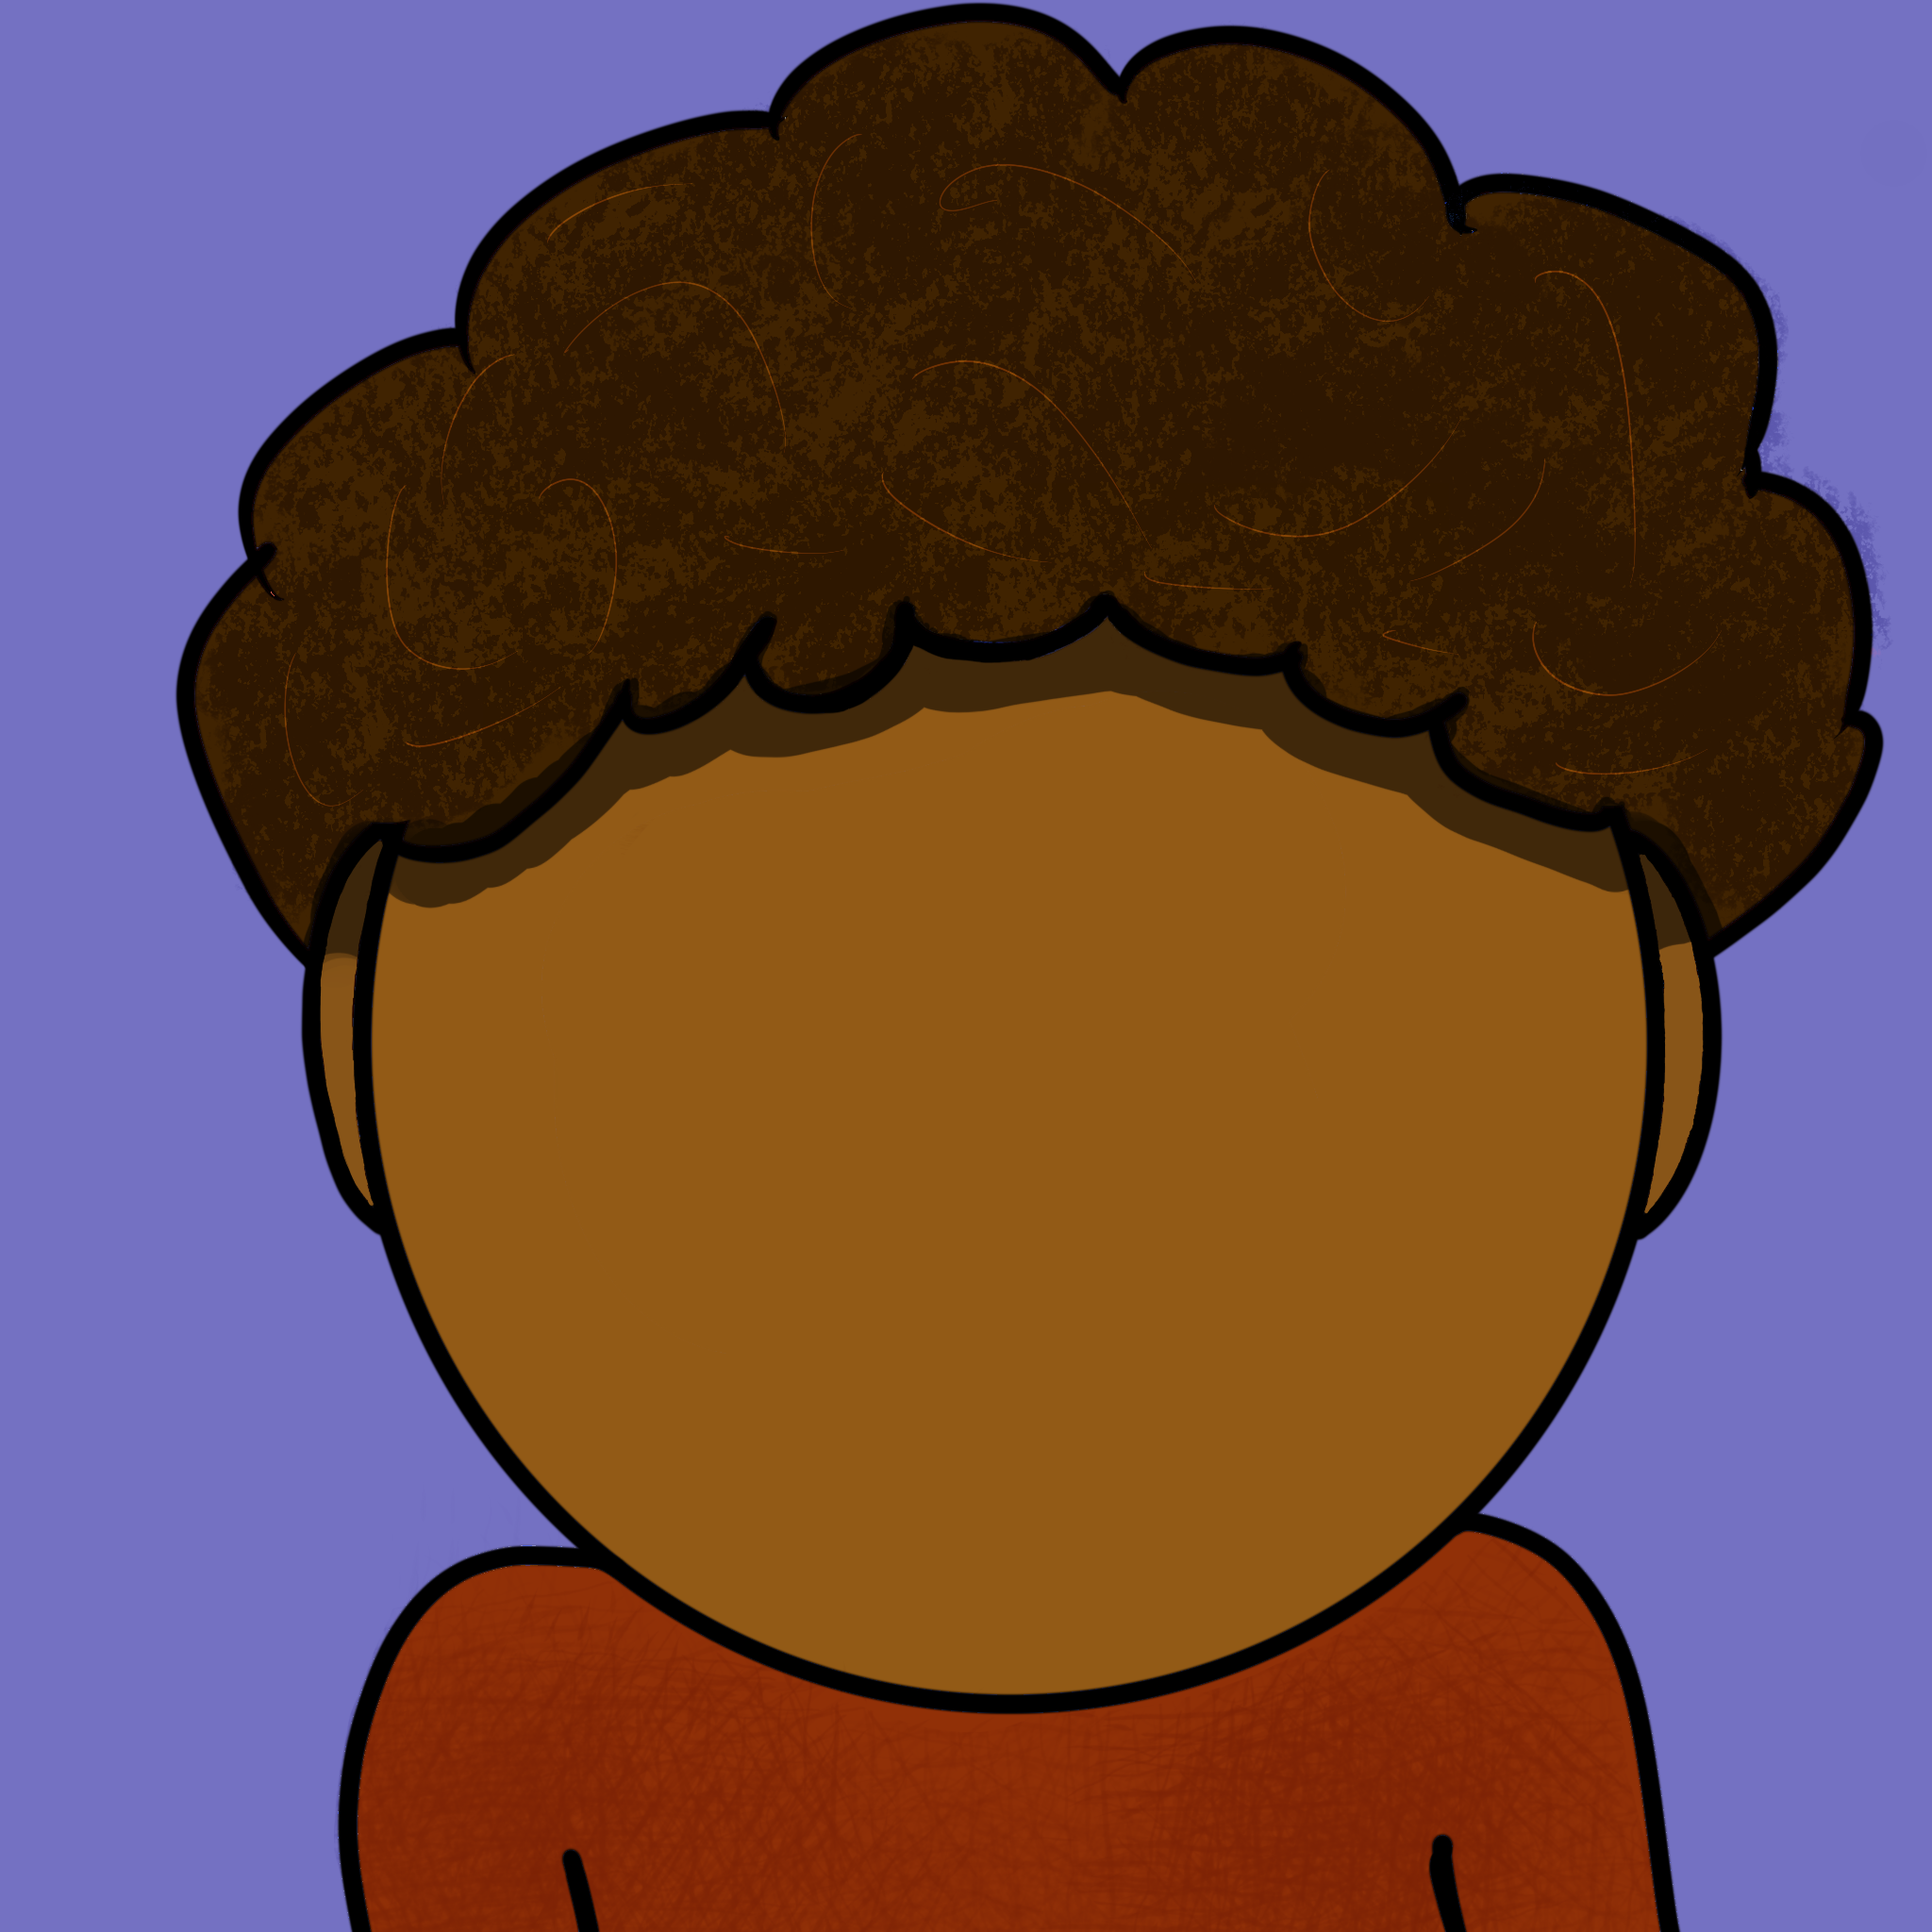 2D Drawing of me, a black guy with a large afro wearing a red sweater.